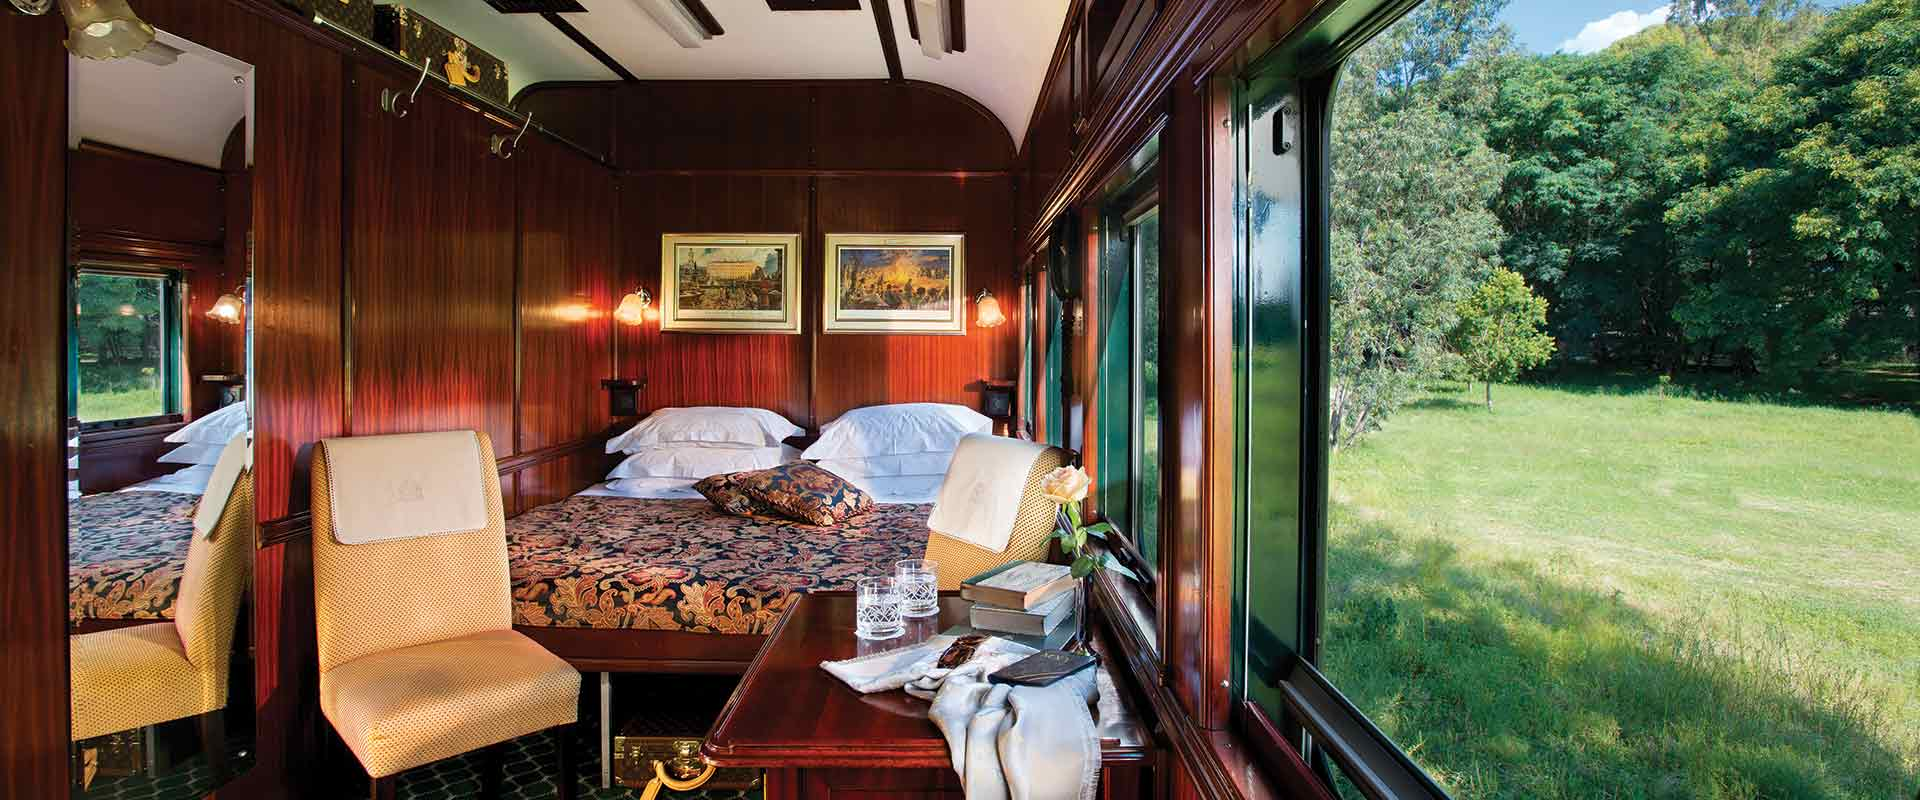 interior of deluxe double suite on rovos rail train, africa